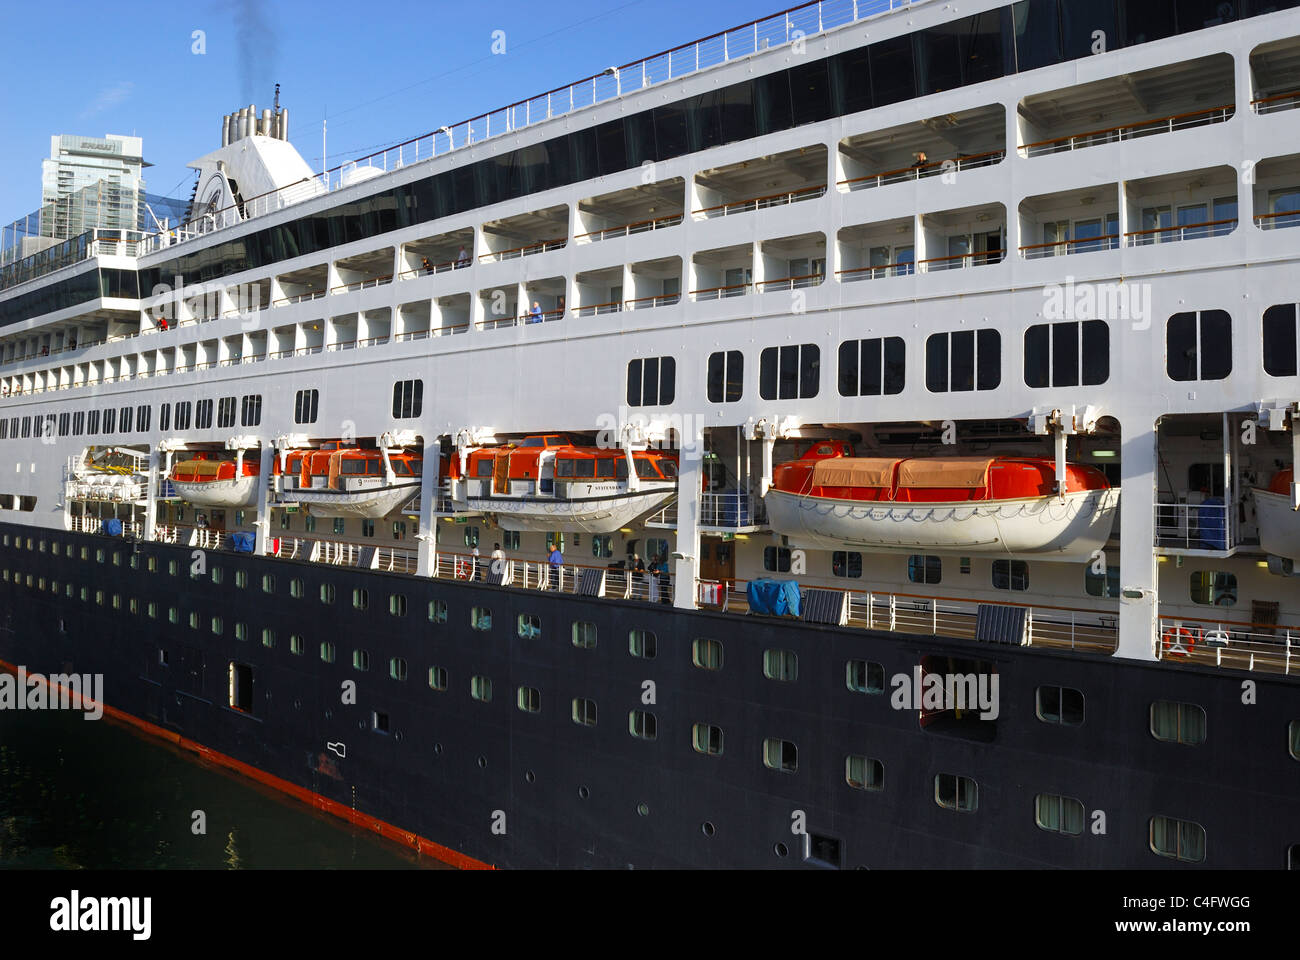 Port Side View Of The Cruise Ship Statendam With Its Many - Port or starboard side of cruise ship